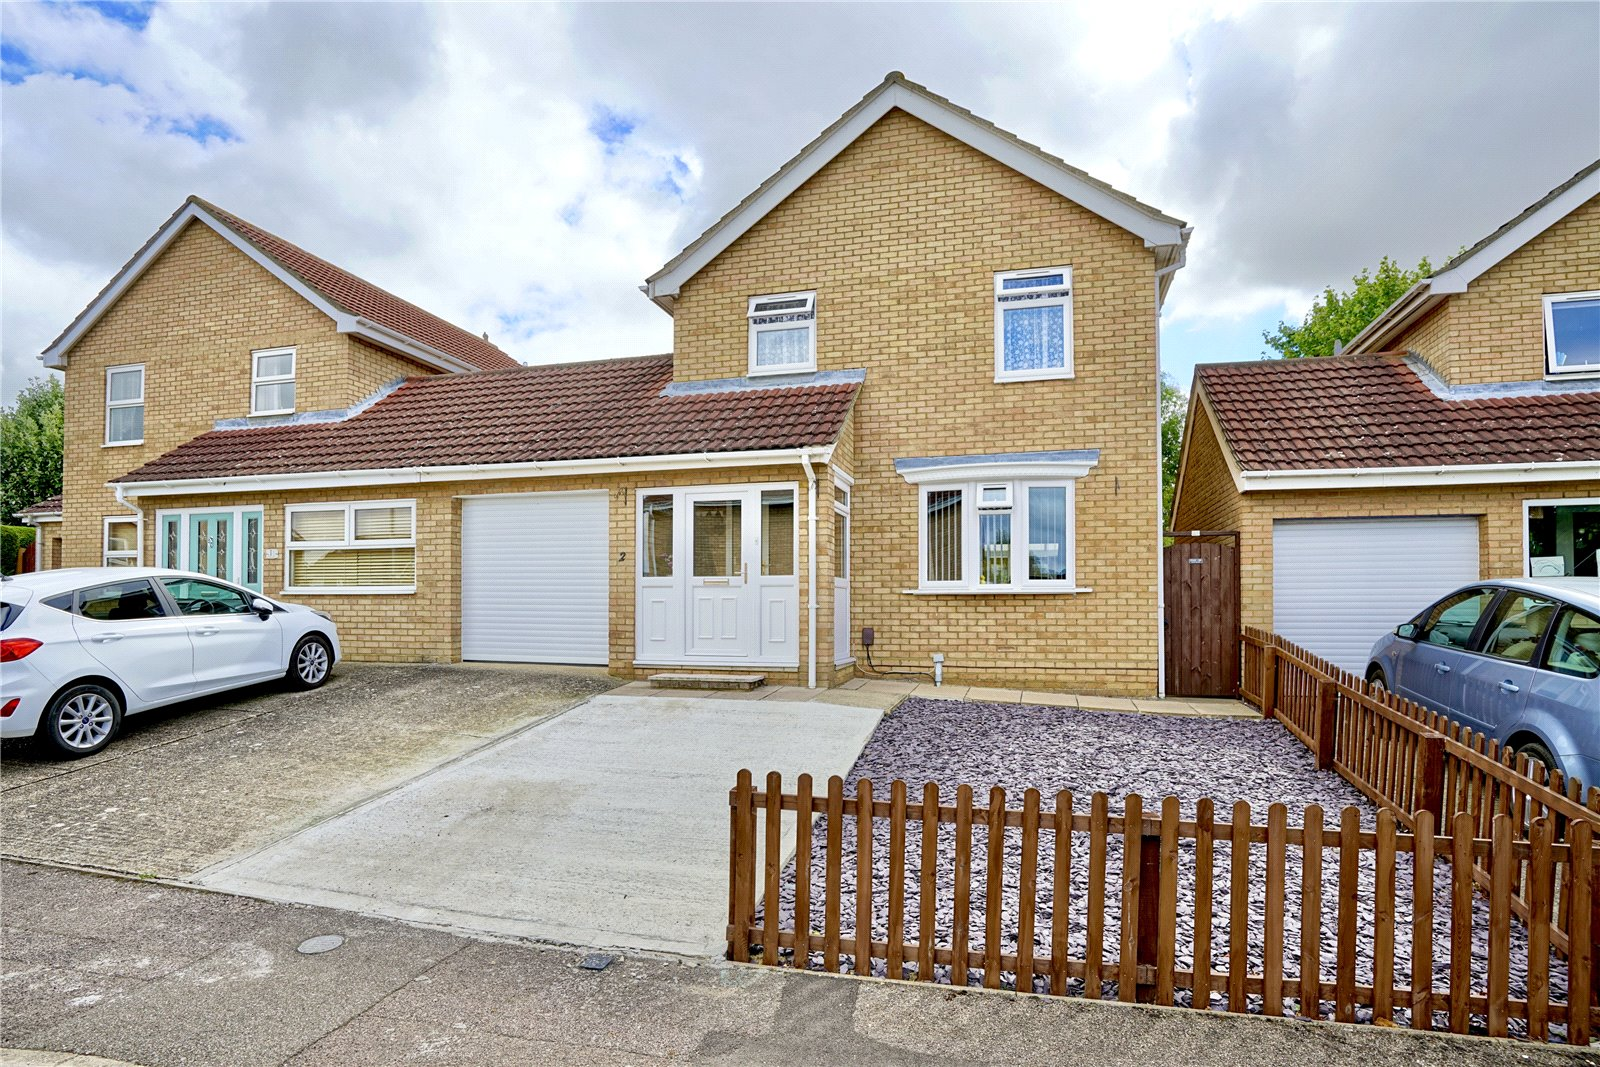 3 bed house for sale in Royal Court, Eaton Socon, PE19